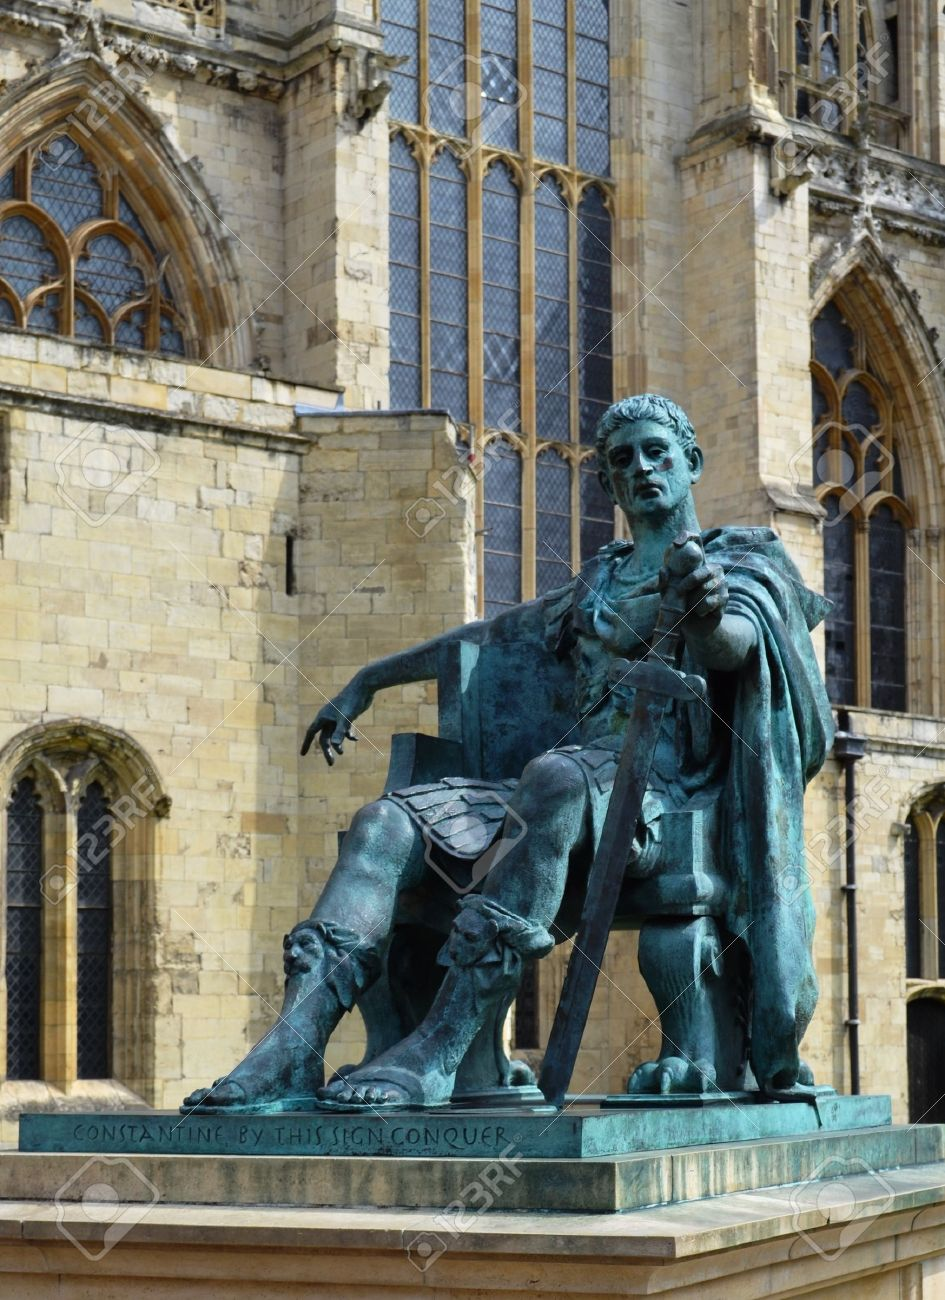 Statue of the young Constantine the Great in front of York Minster